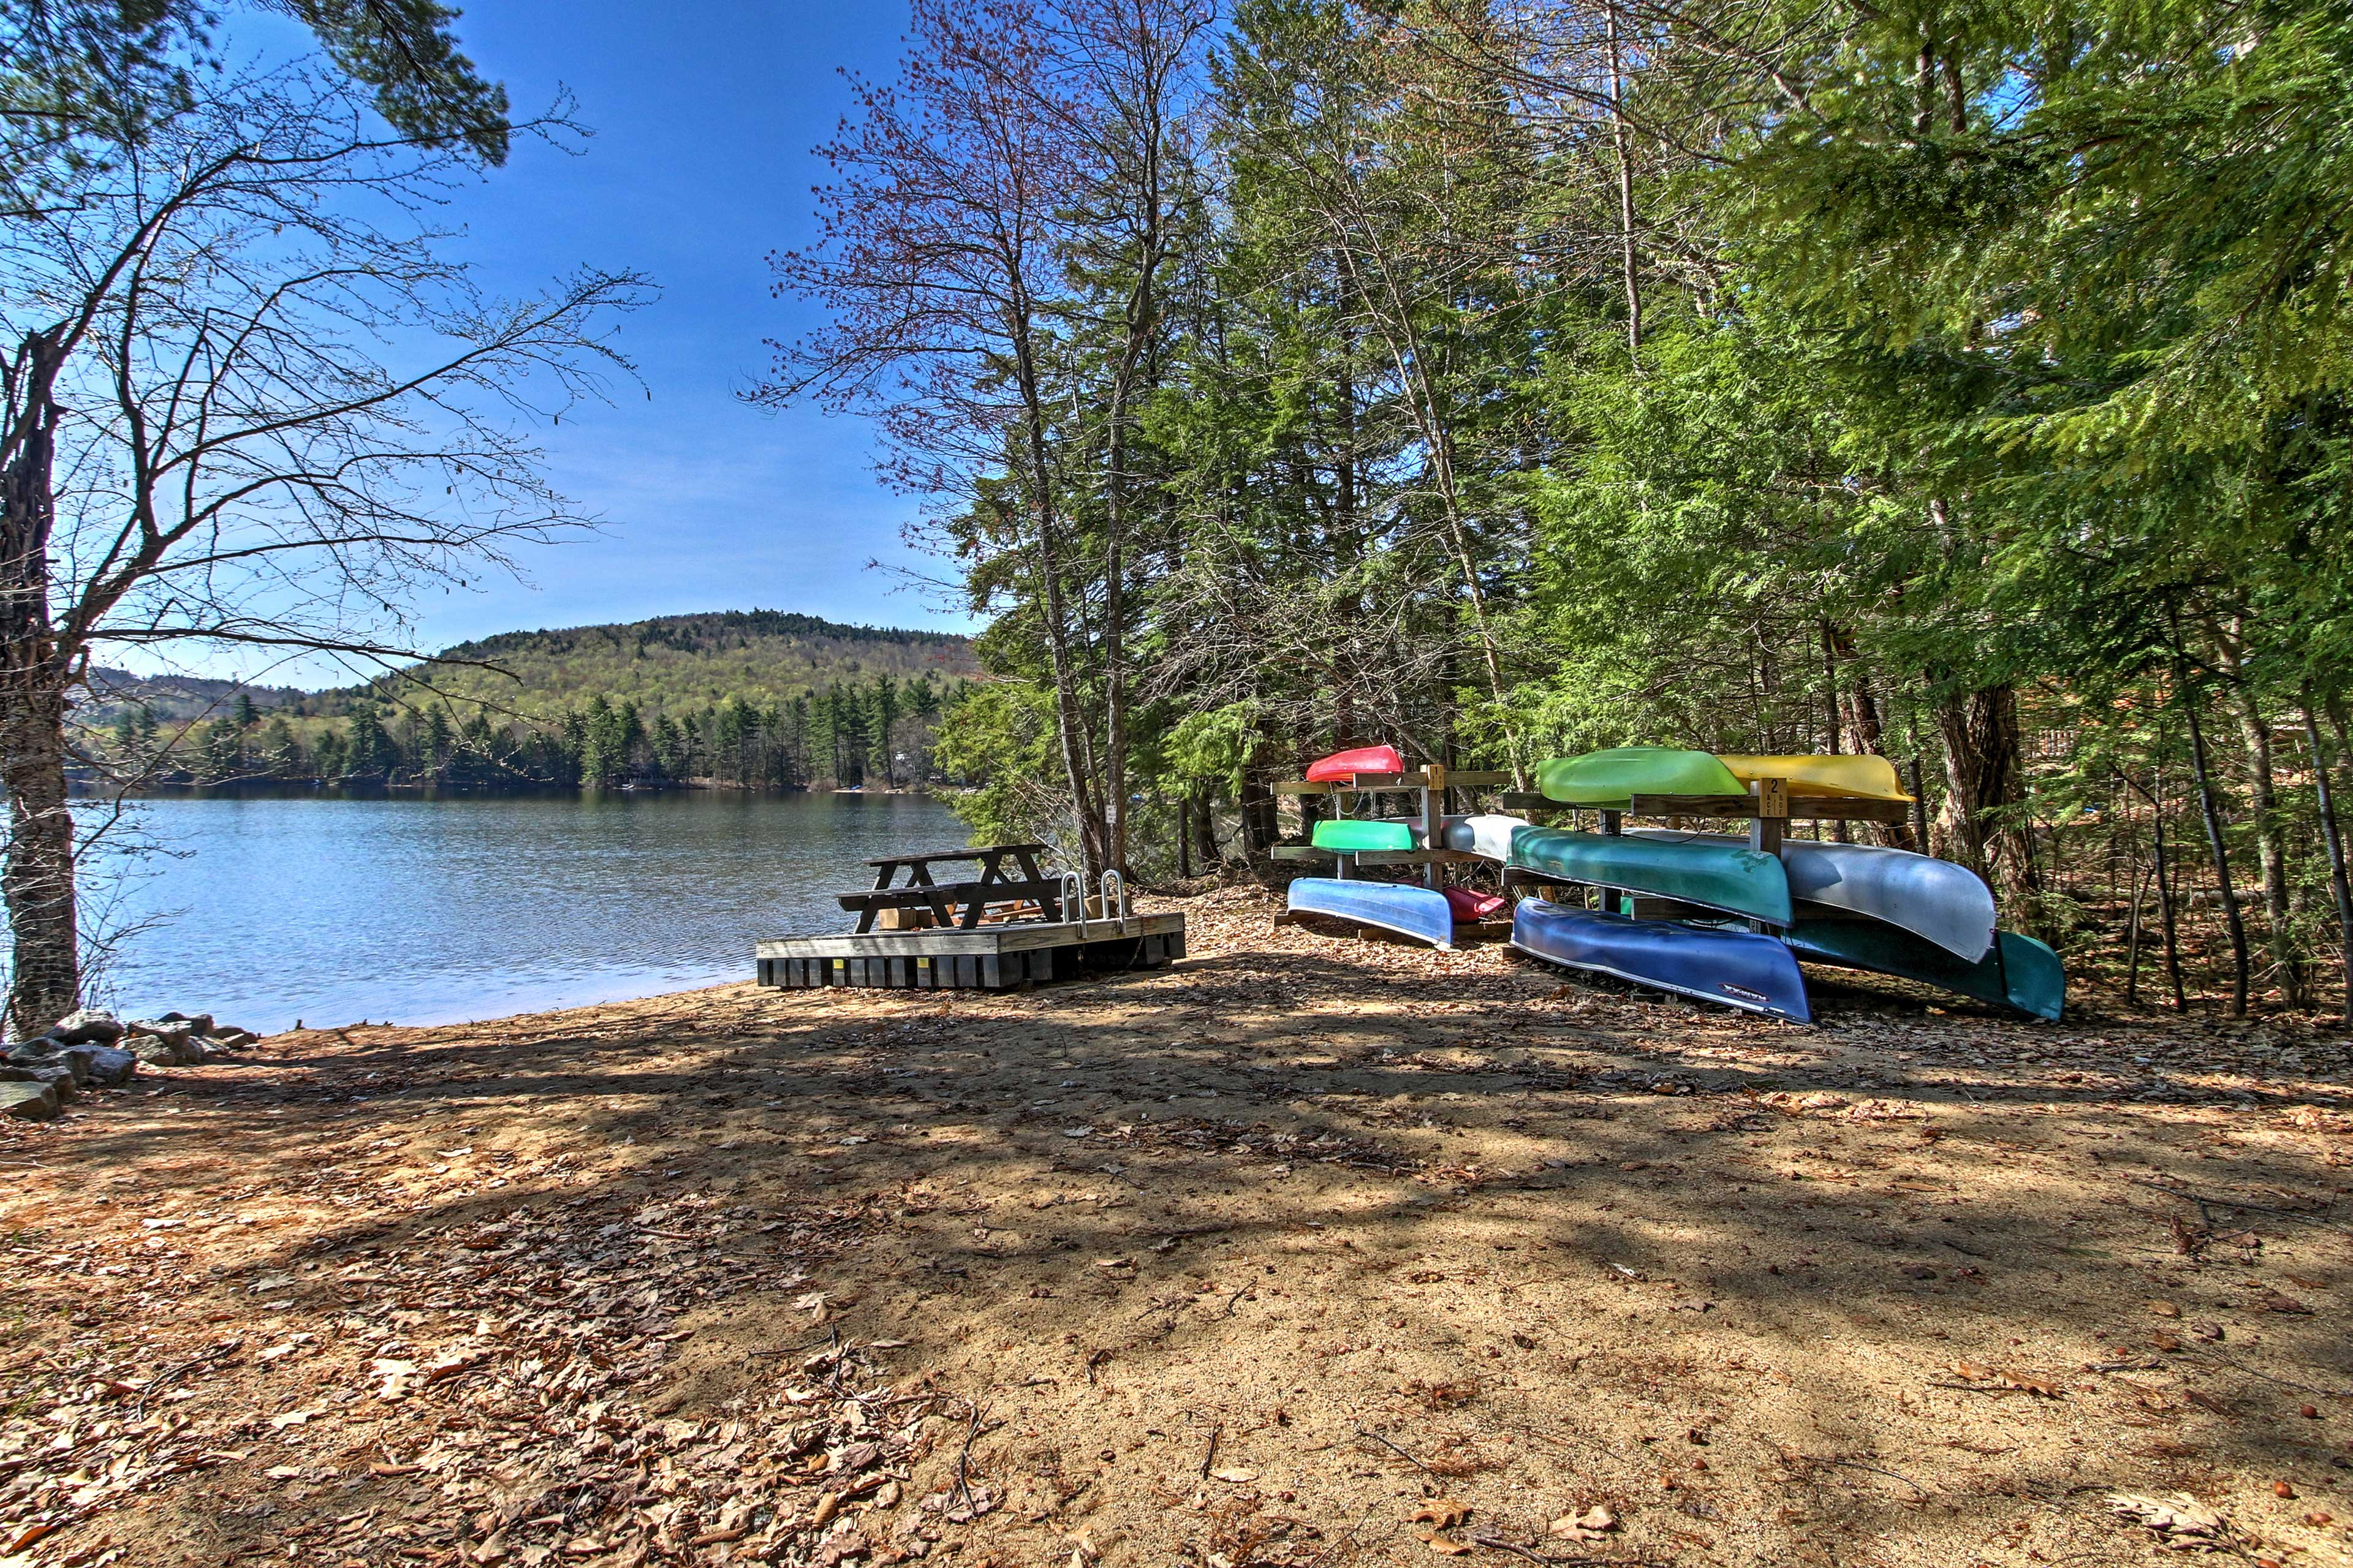 Enjoy the beach and lake that are just steps from the cabin.